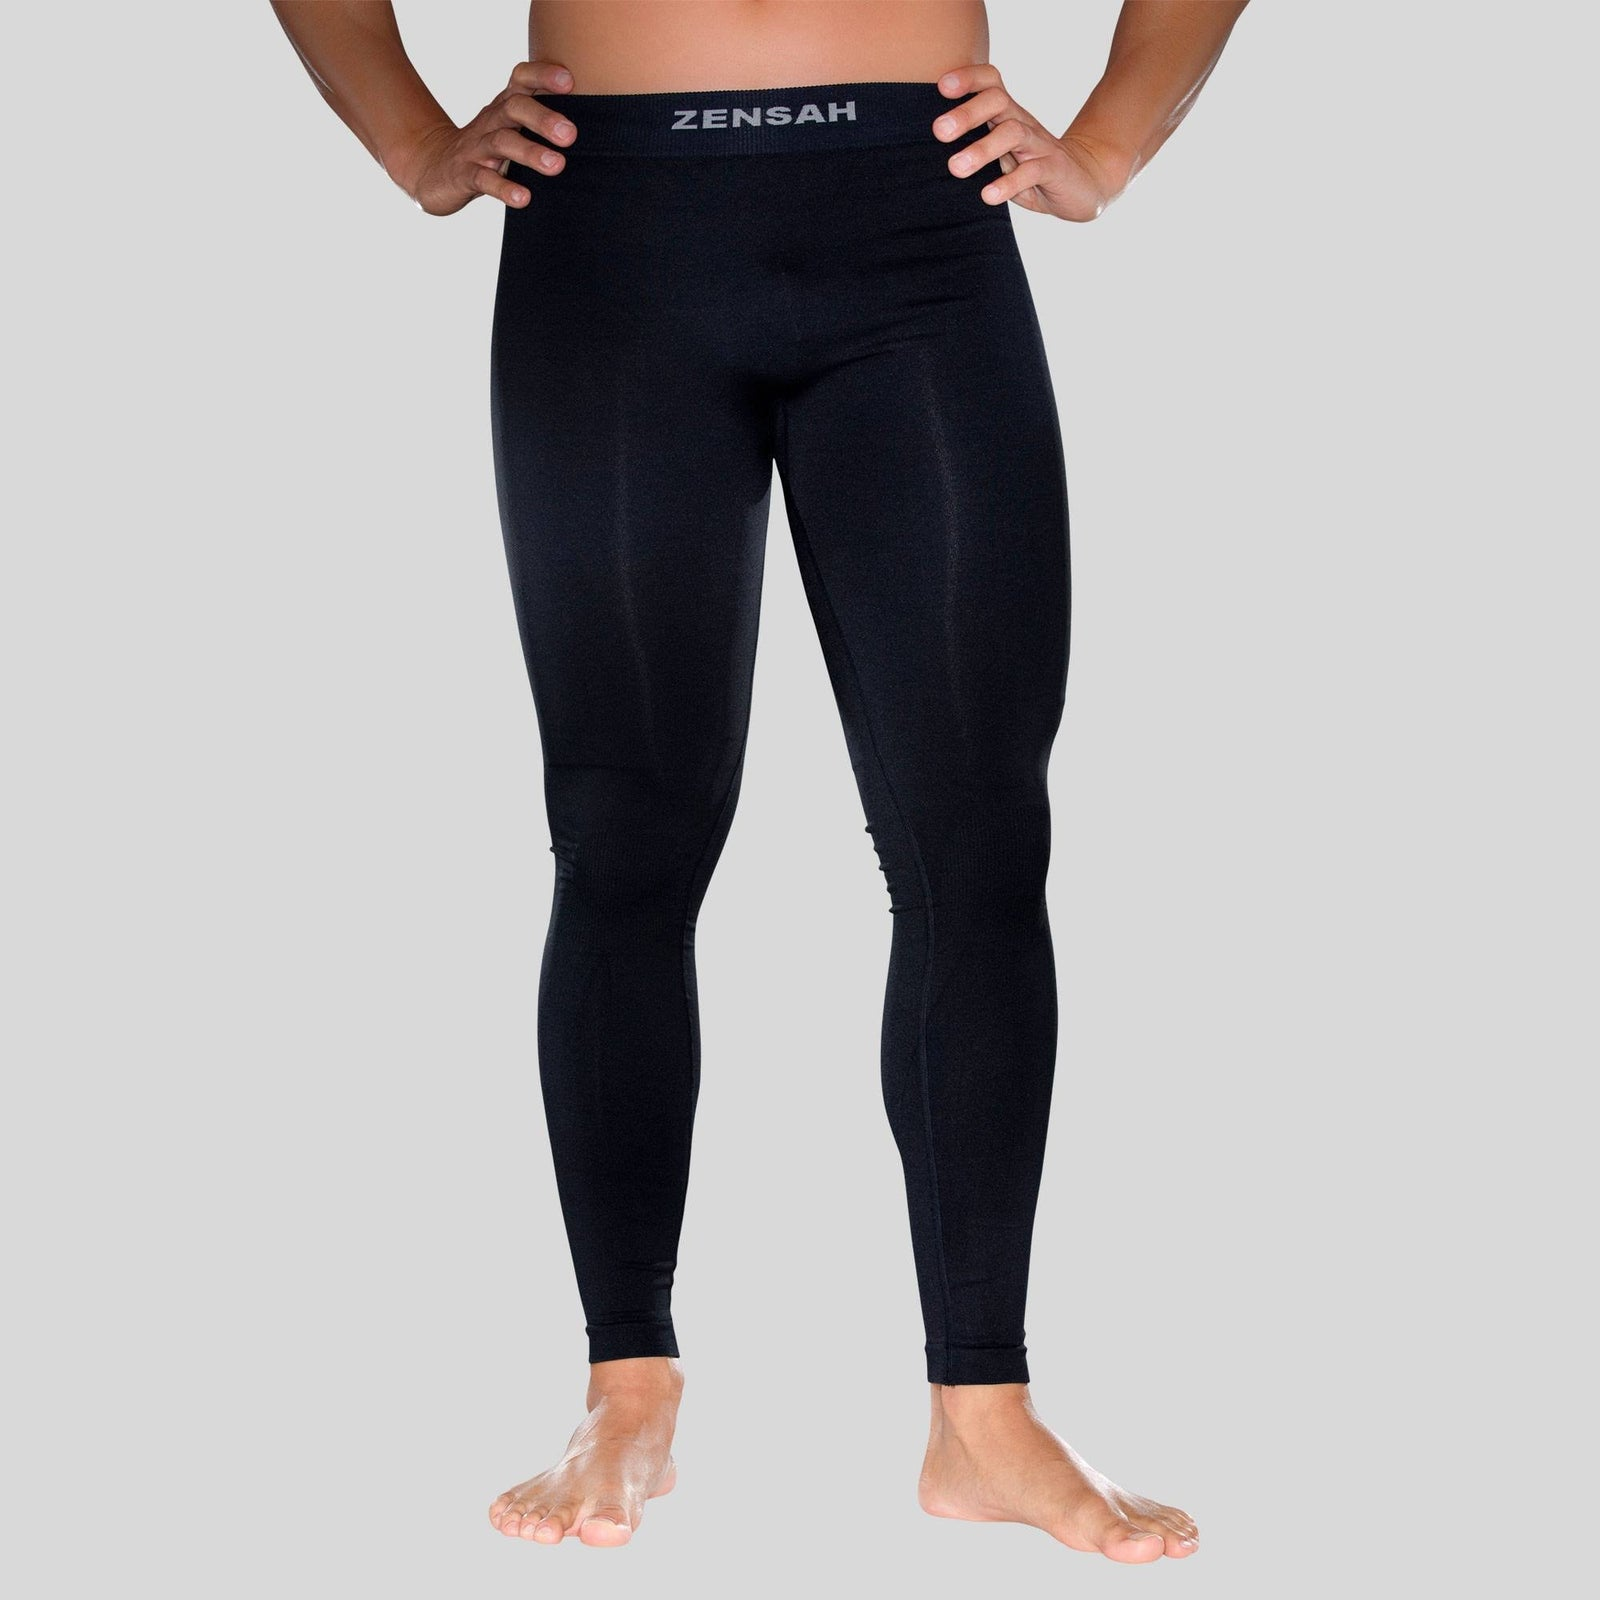 7ae3a891aa1 Men s Compression Tights and Shorts